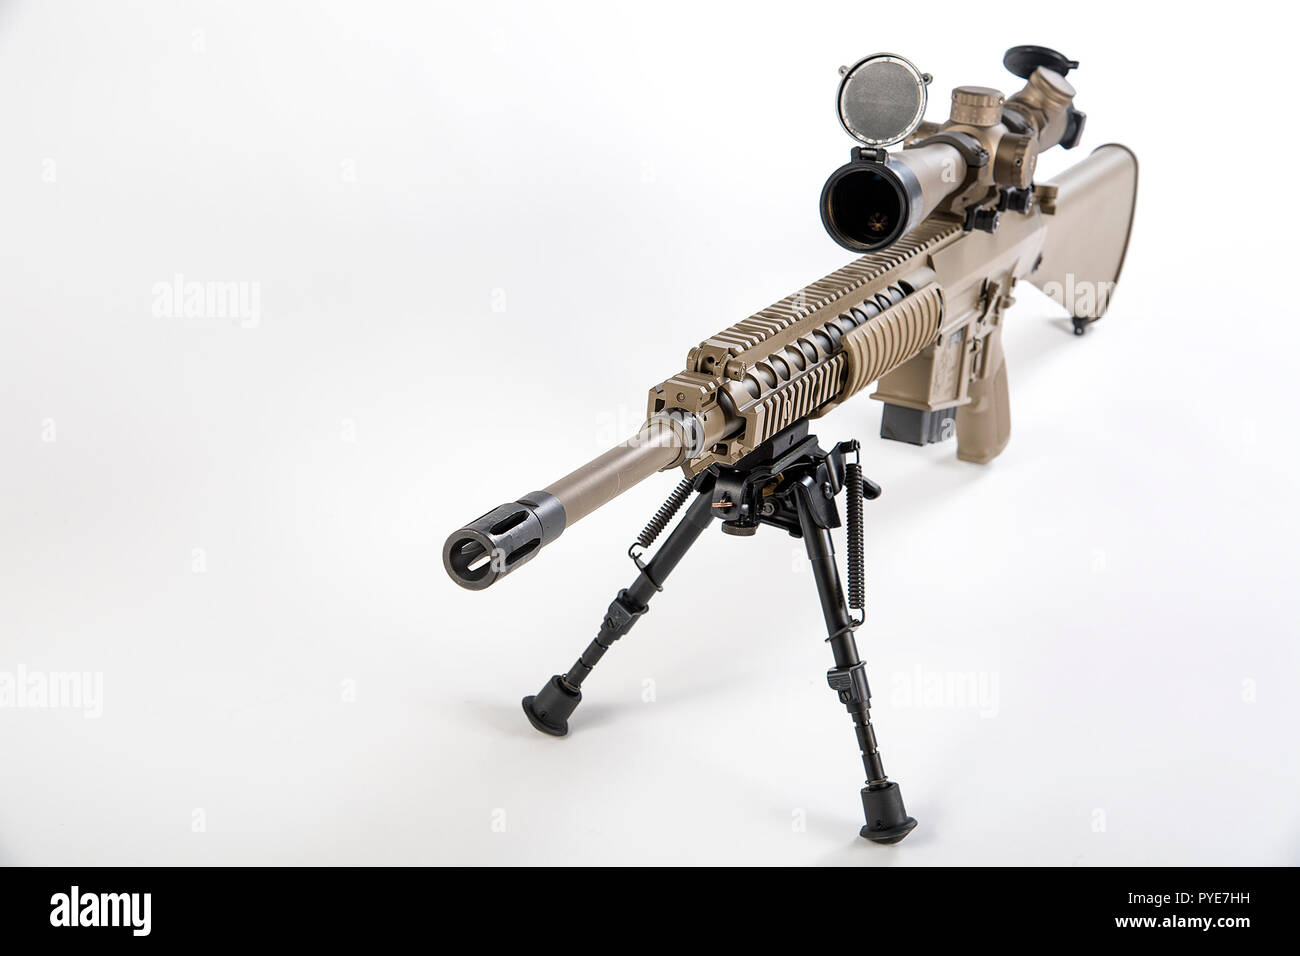 7 62mm Rifle Stock Photos & 7 62mm Rifle Stock Images - Alamy